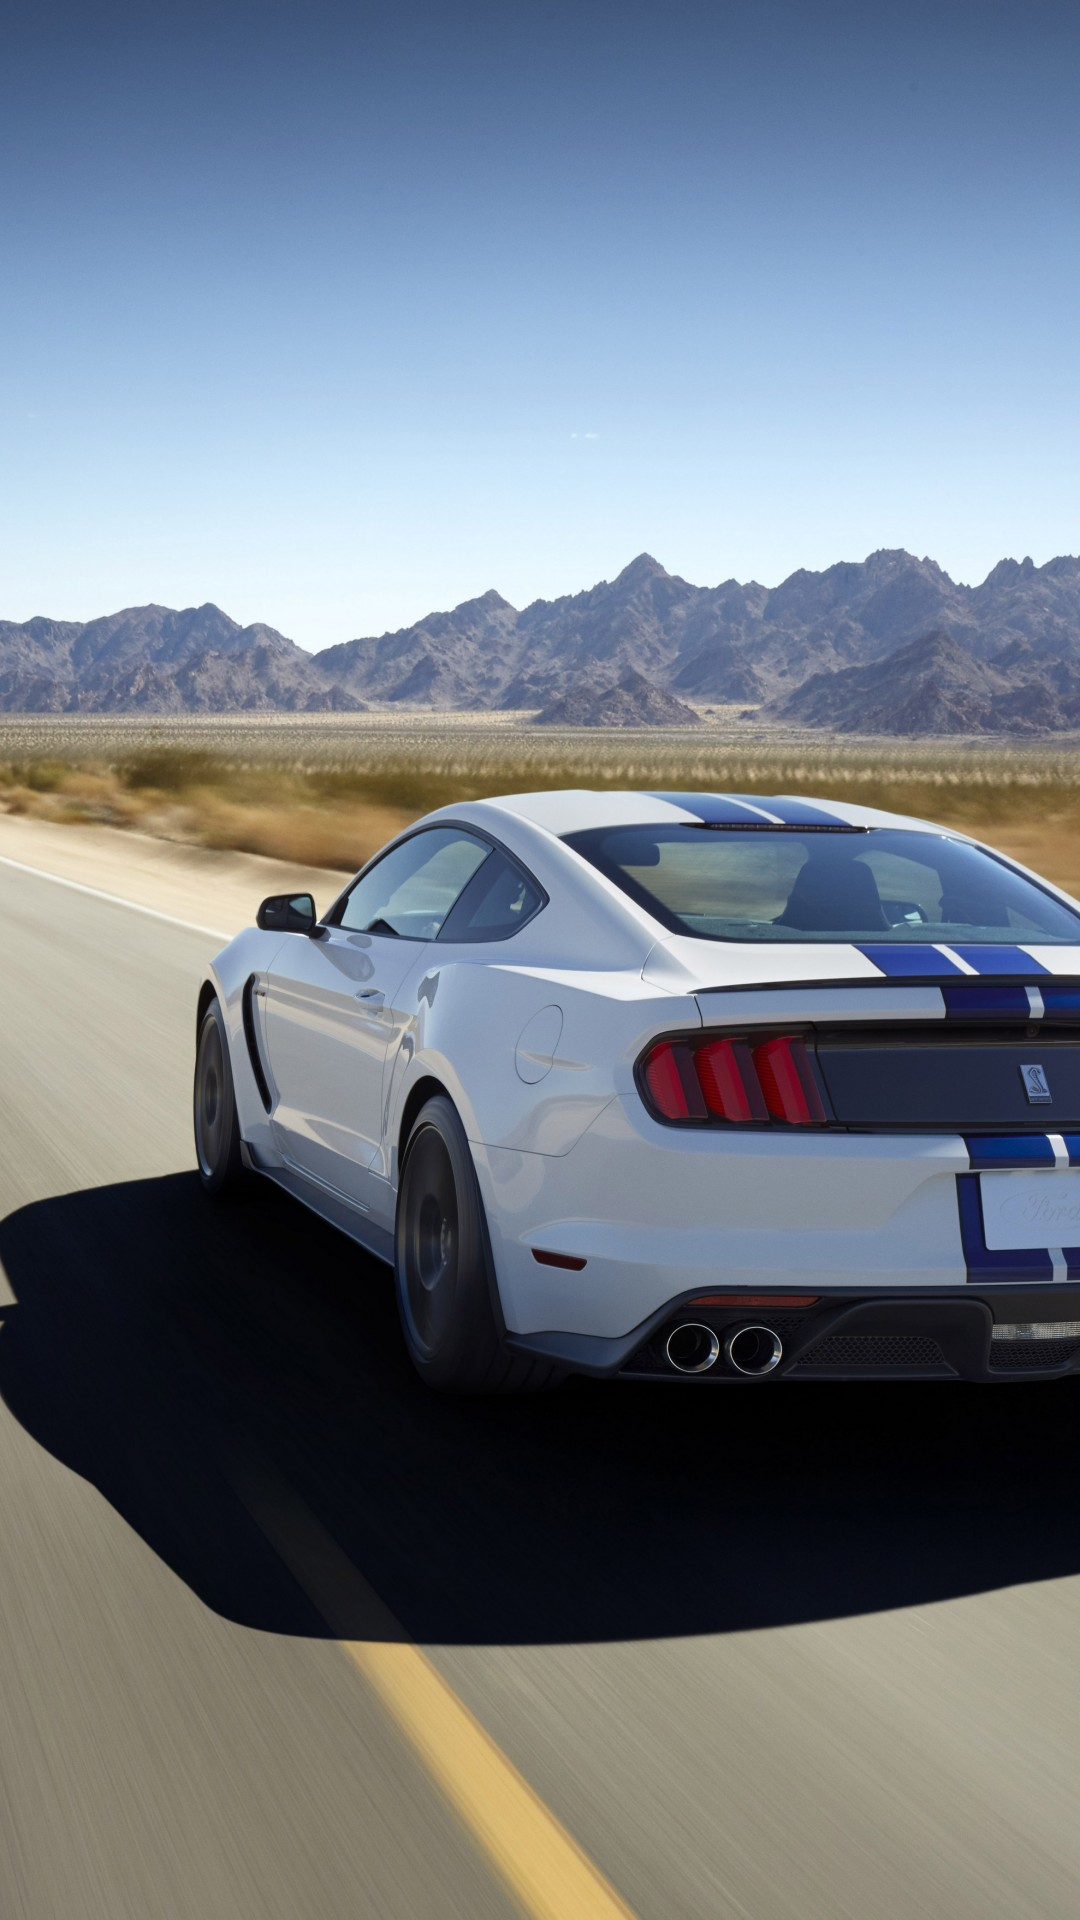 Iphone 5s Stock Wallpaper Wallpaper Ford Mustang Shelby Gt350 Shelby Gt350